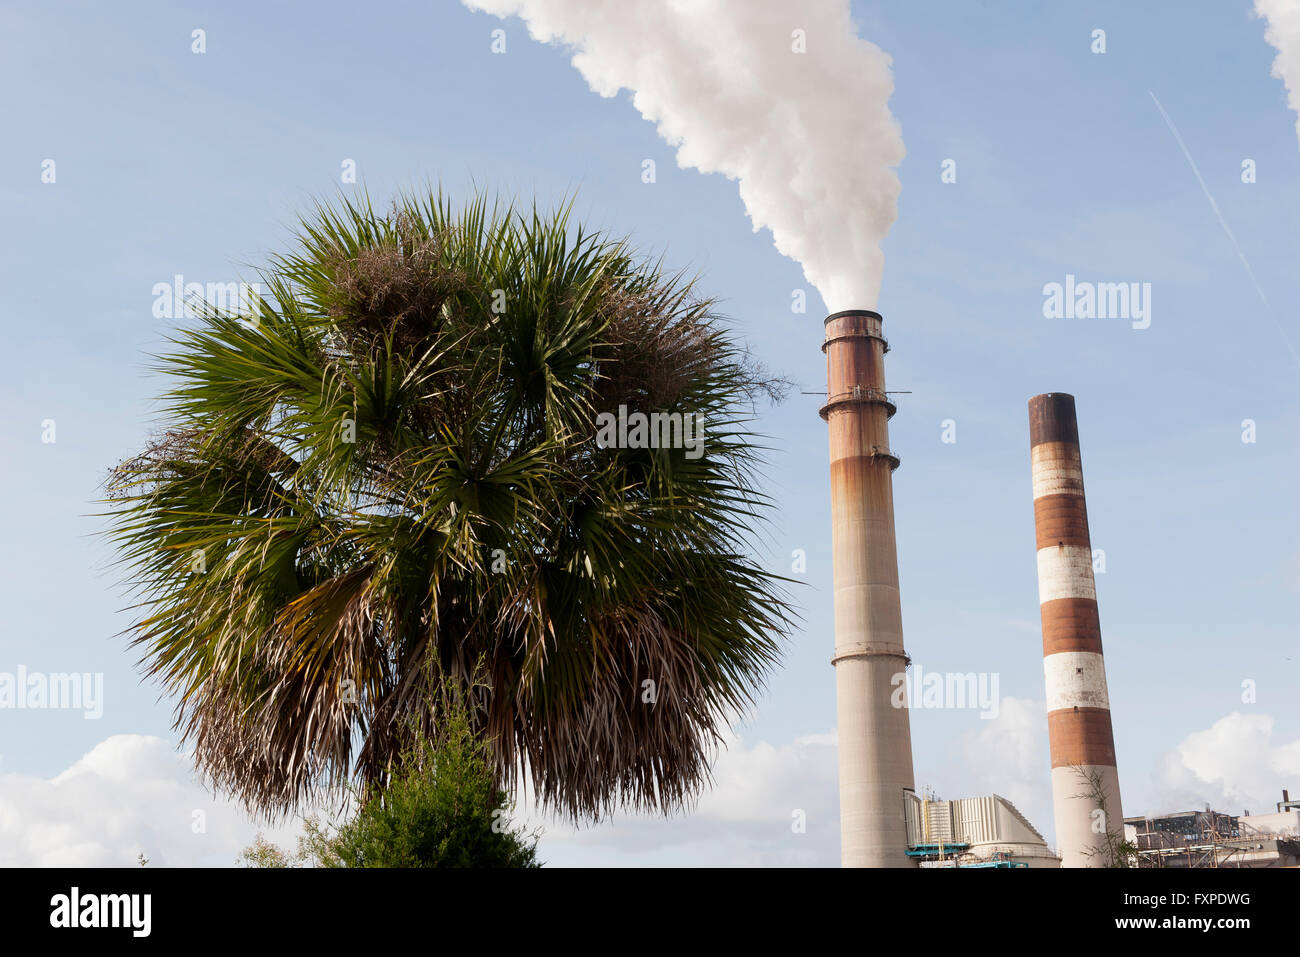 Smokestacks emitting fumes near palm tree - Stock Image